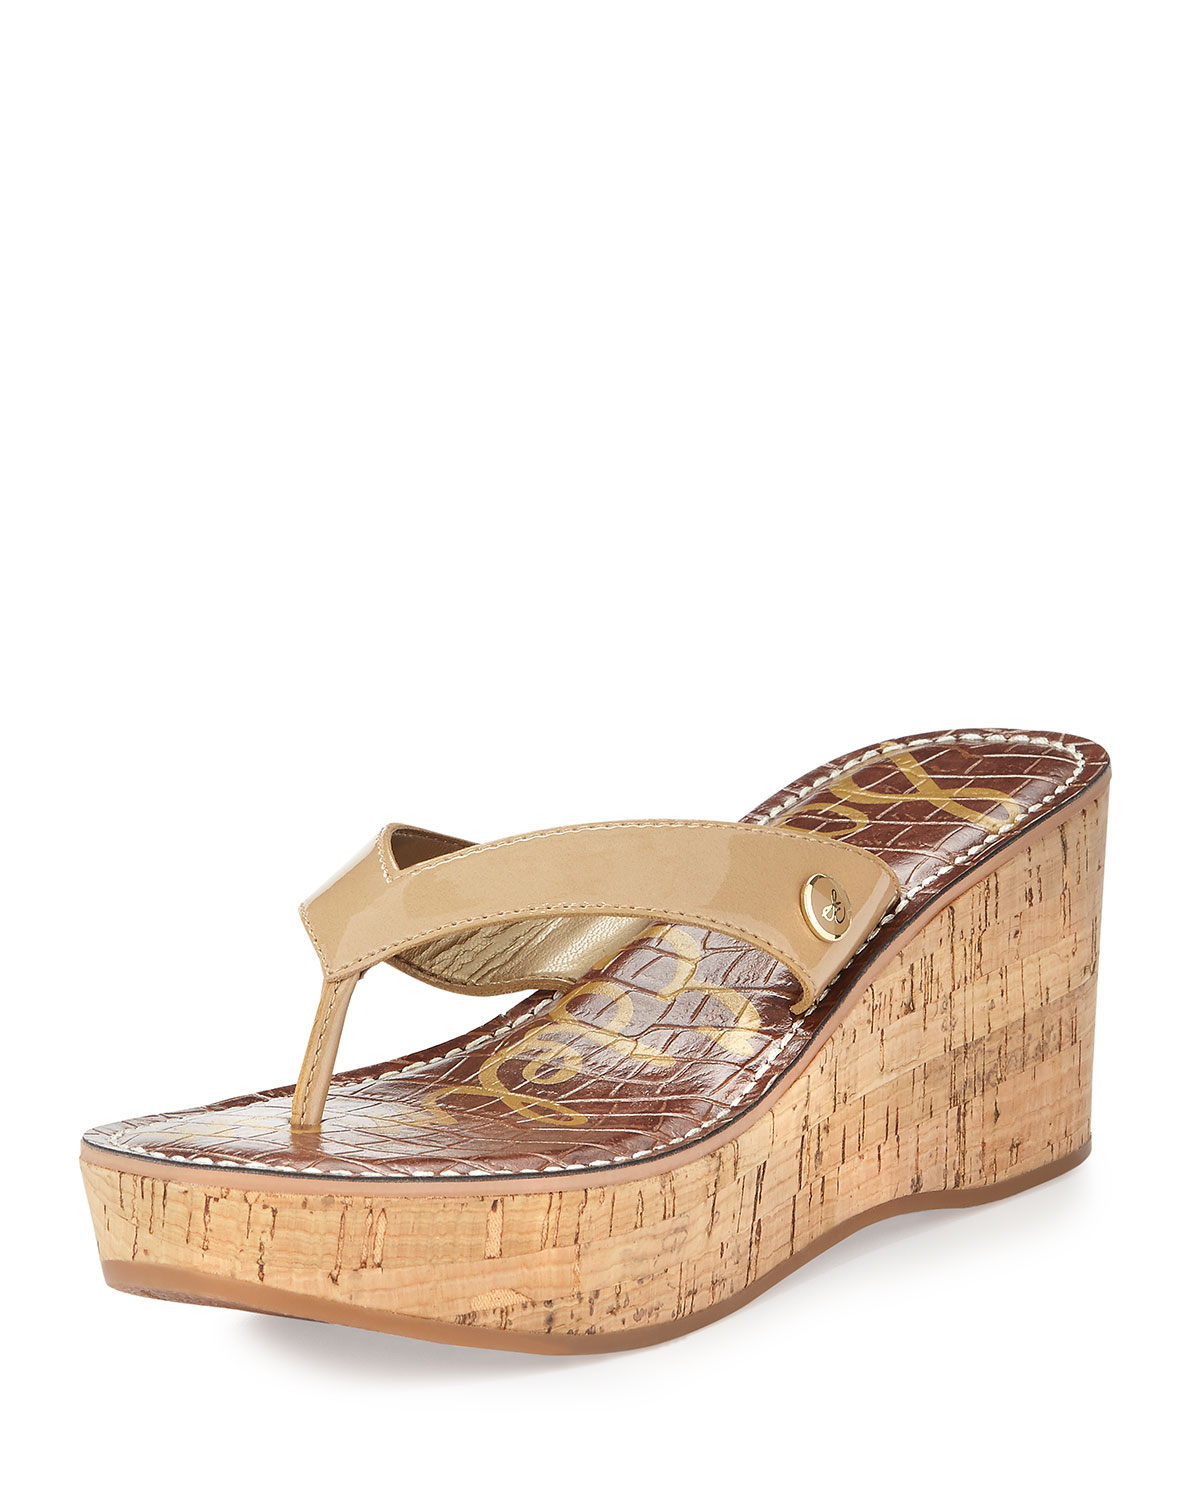 dc71cd11345 Lyst - Sam Edelman Romy Patent Leather Wedge Sandal in Natural